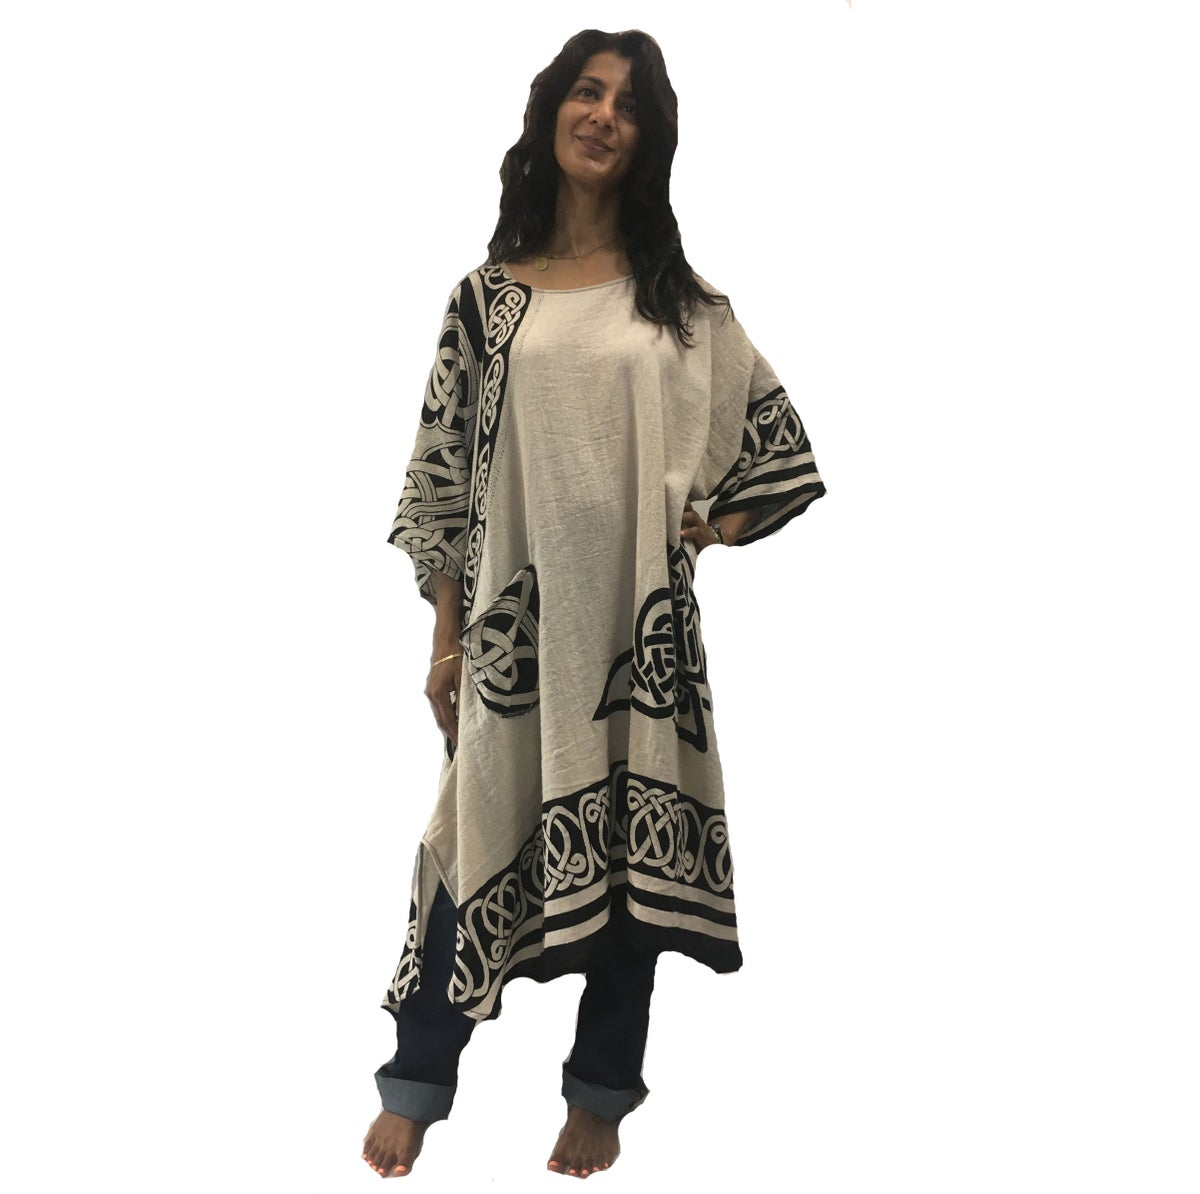 Image of Celtic Tunic/Dress - Cotton - Hand woven - Hand Block Printed